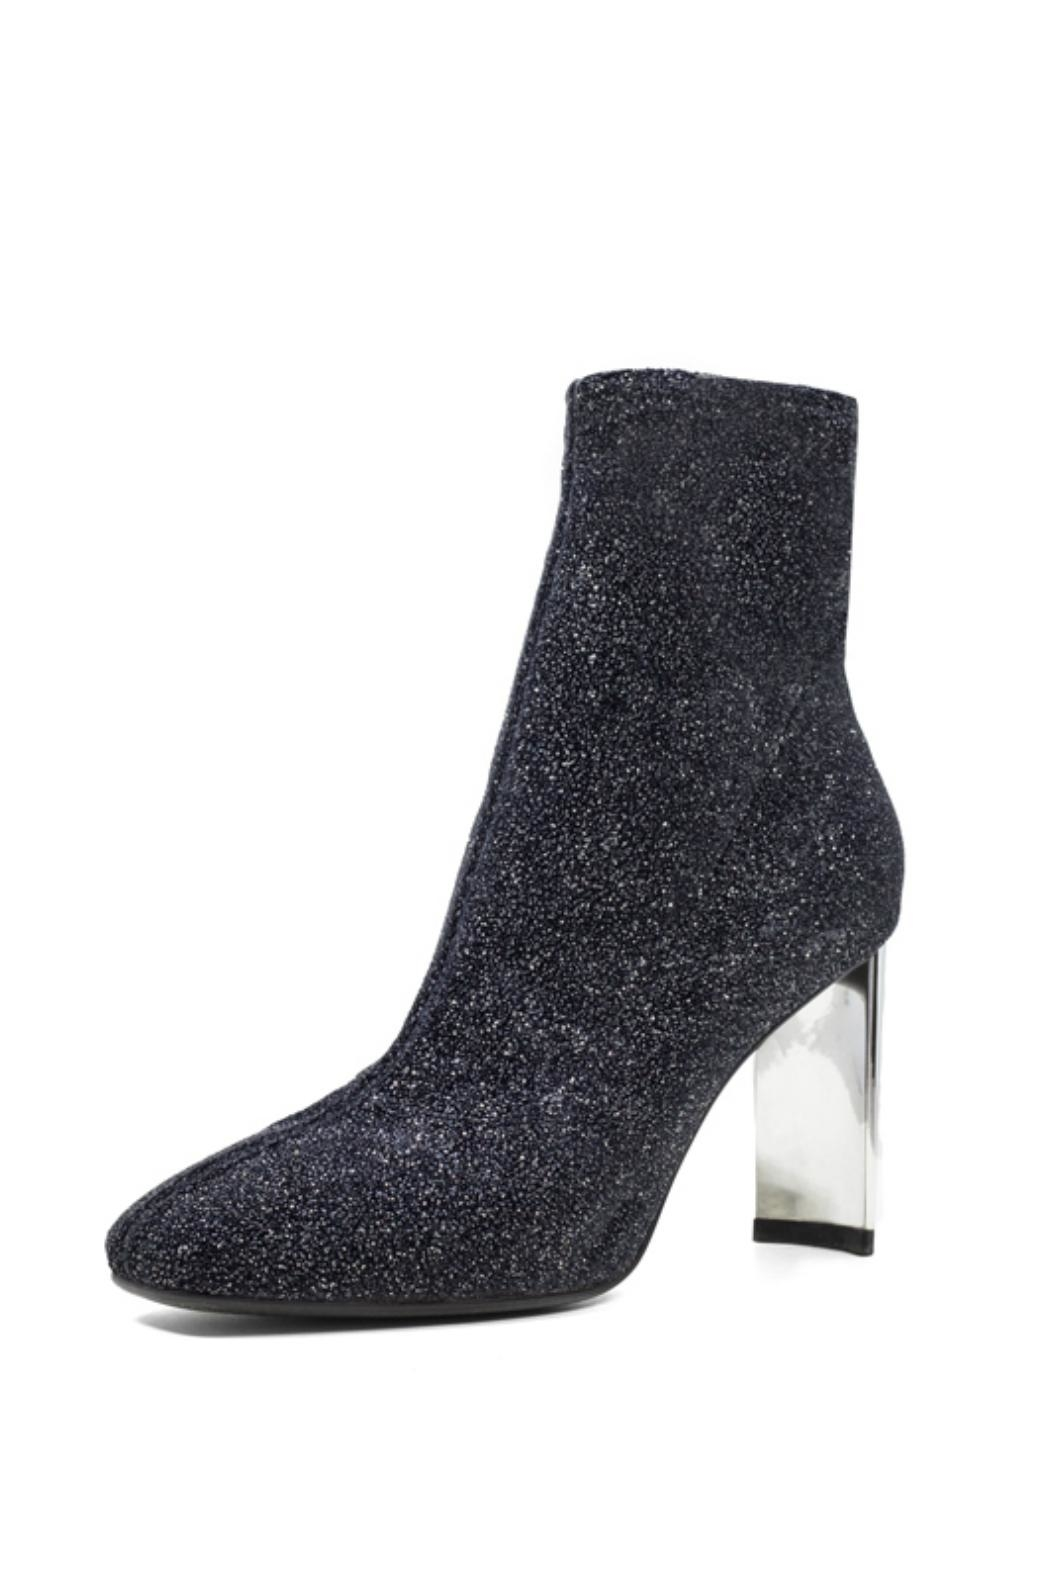 Lola Cruz Metallic Glitter Boot - Front Full Image